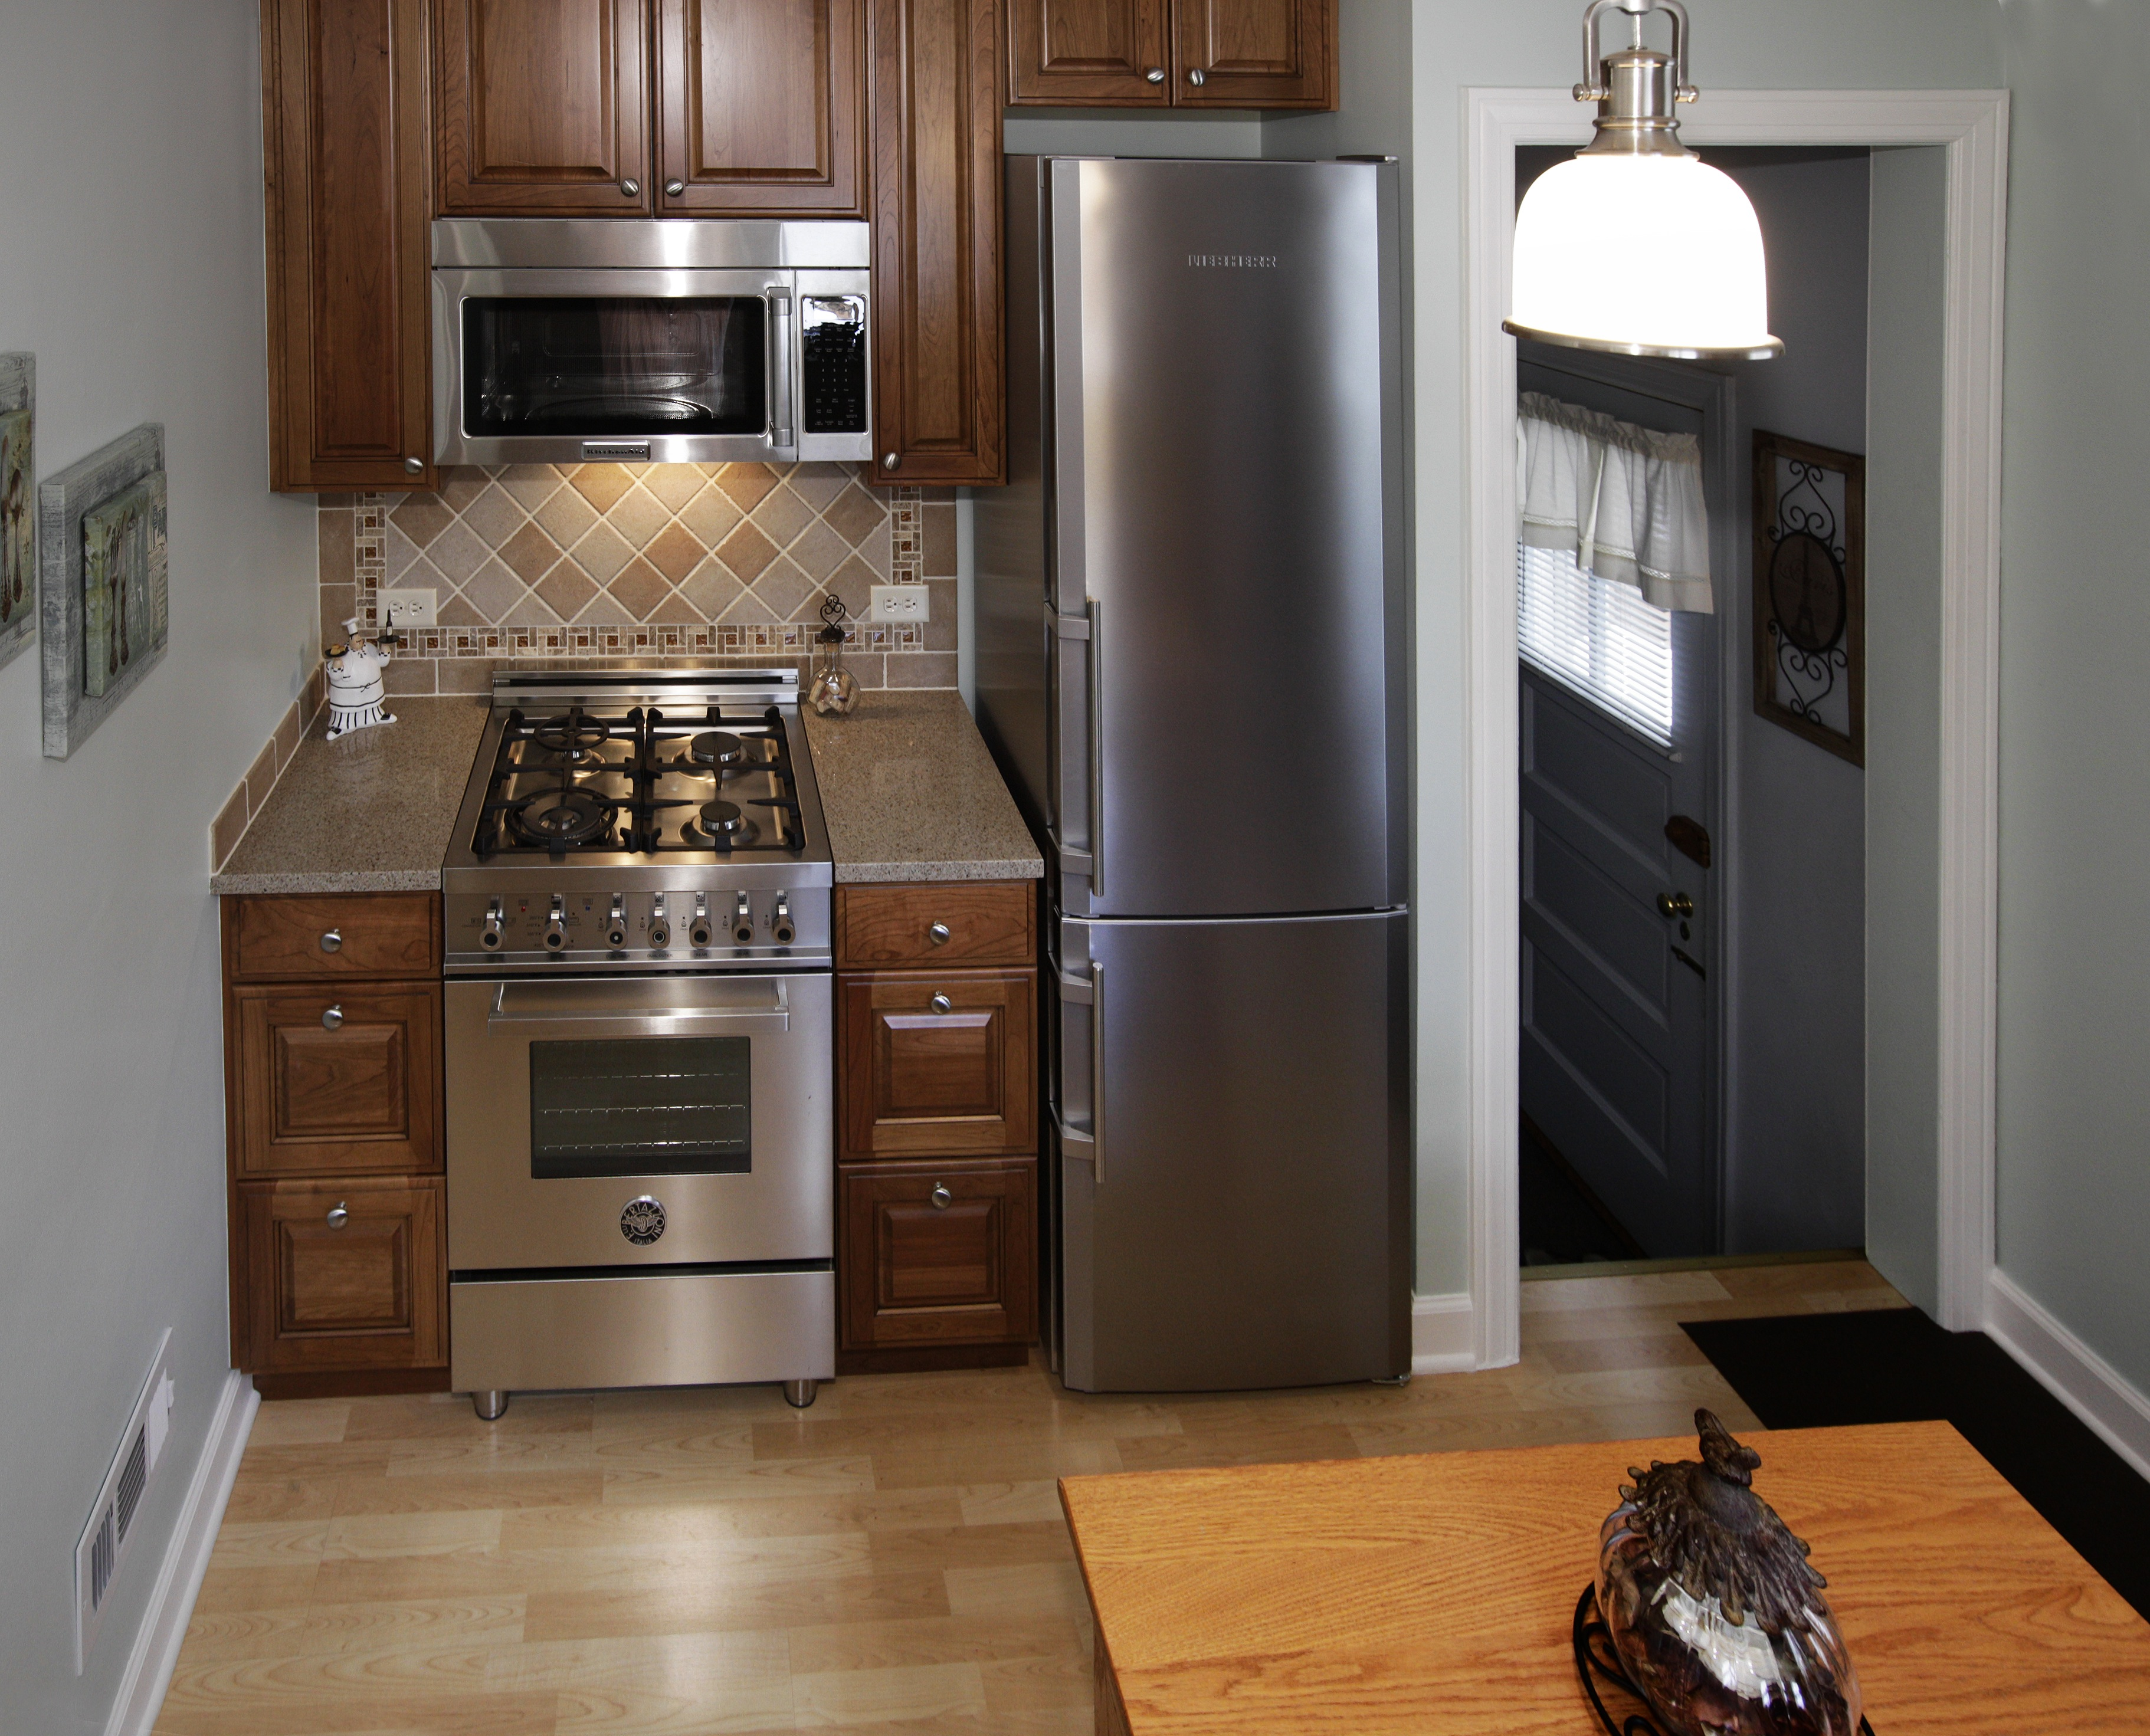 kitchen remodel how to island wine fridge small elmwood park il better kitchens click